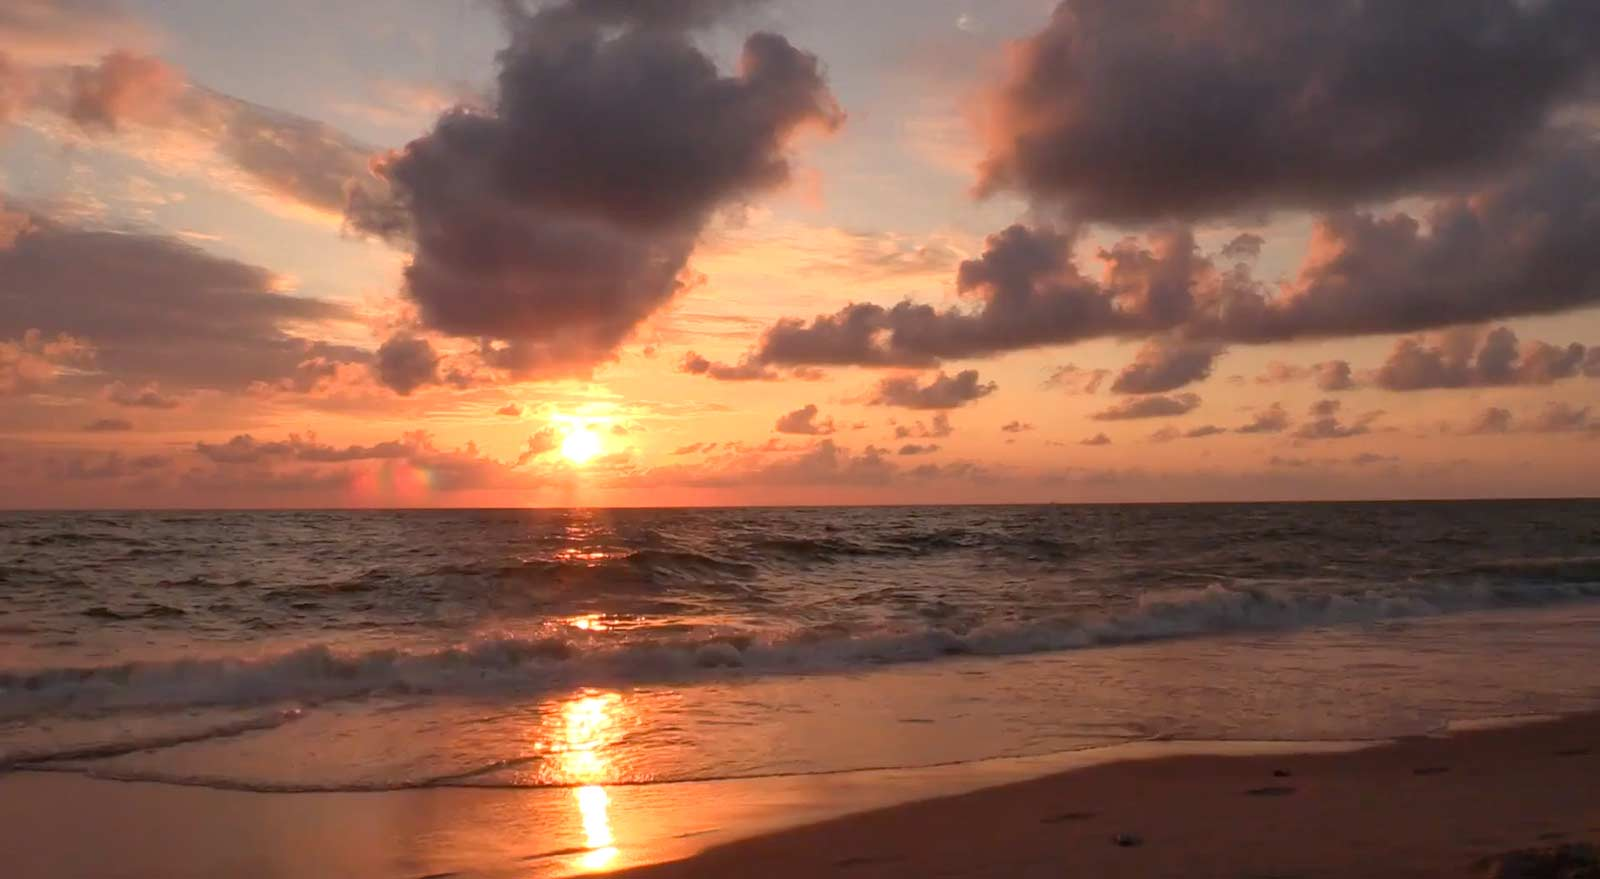 Video of ocean waves at sunset